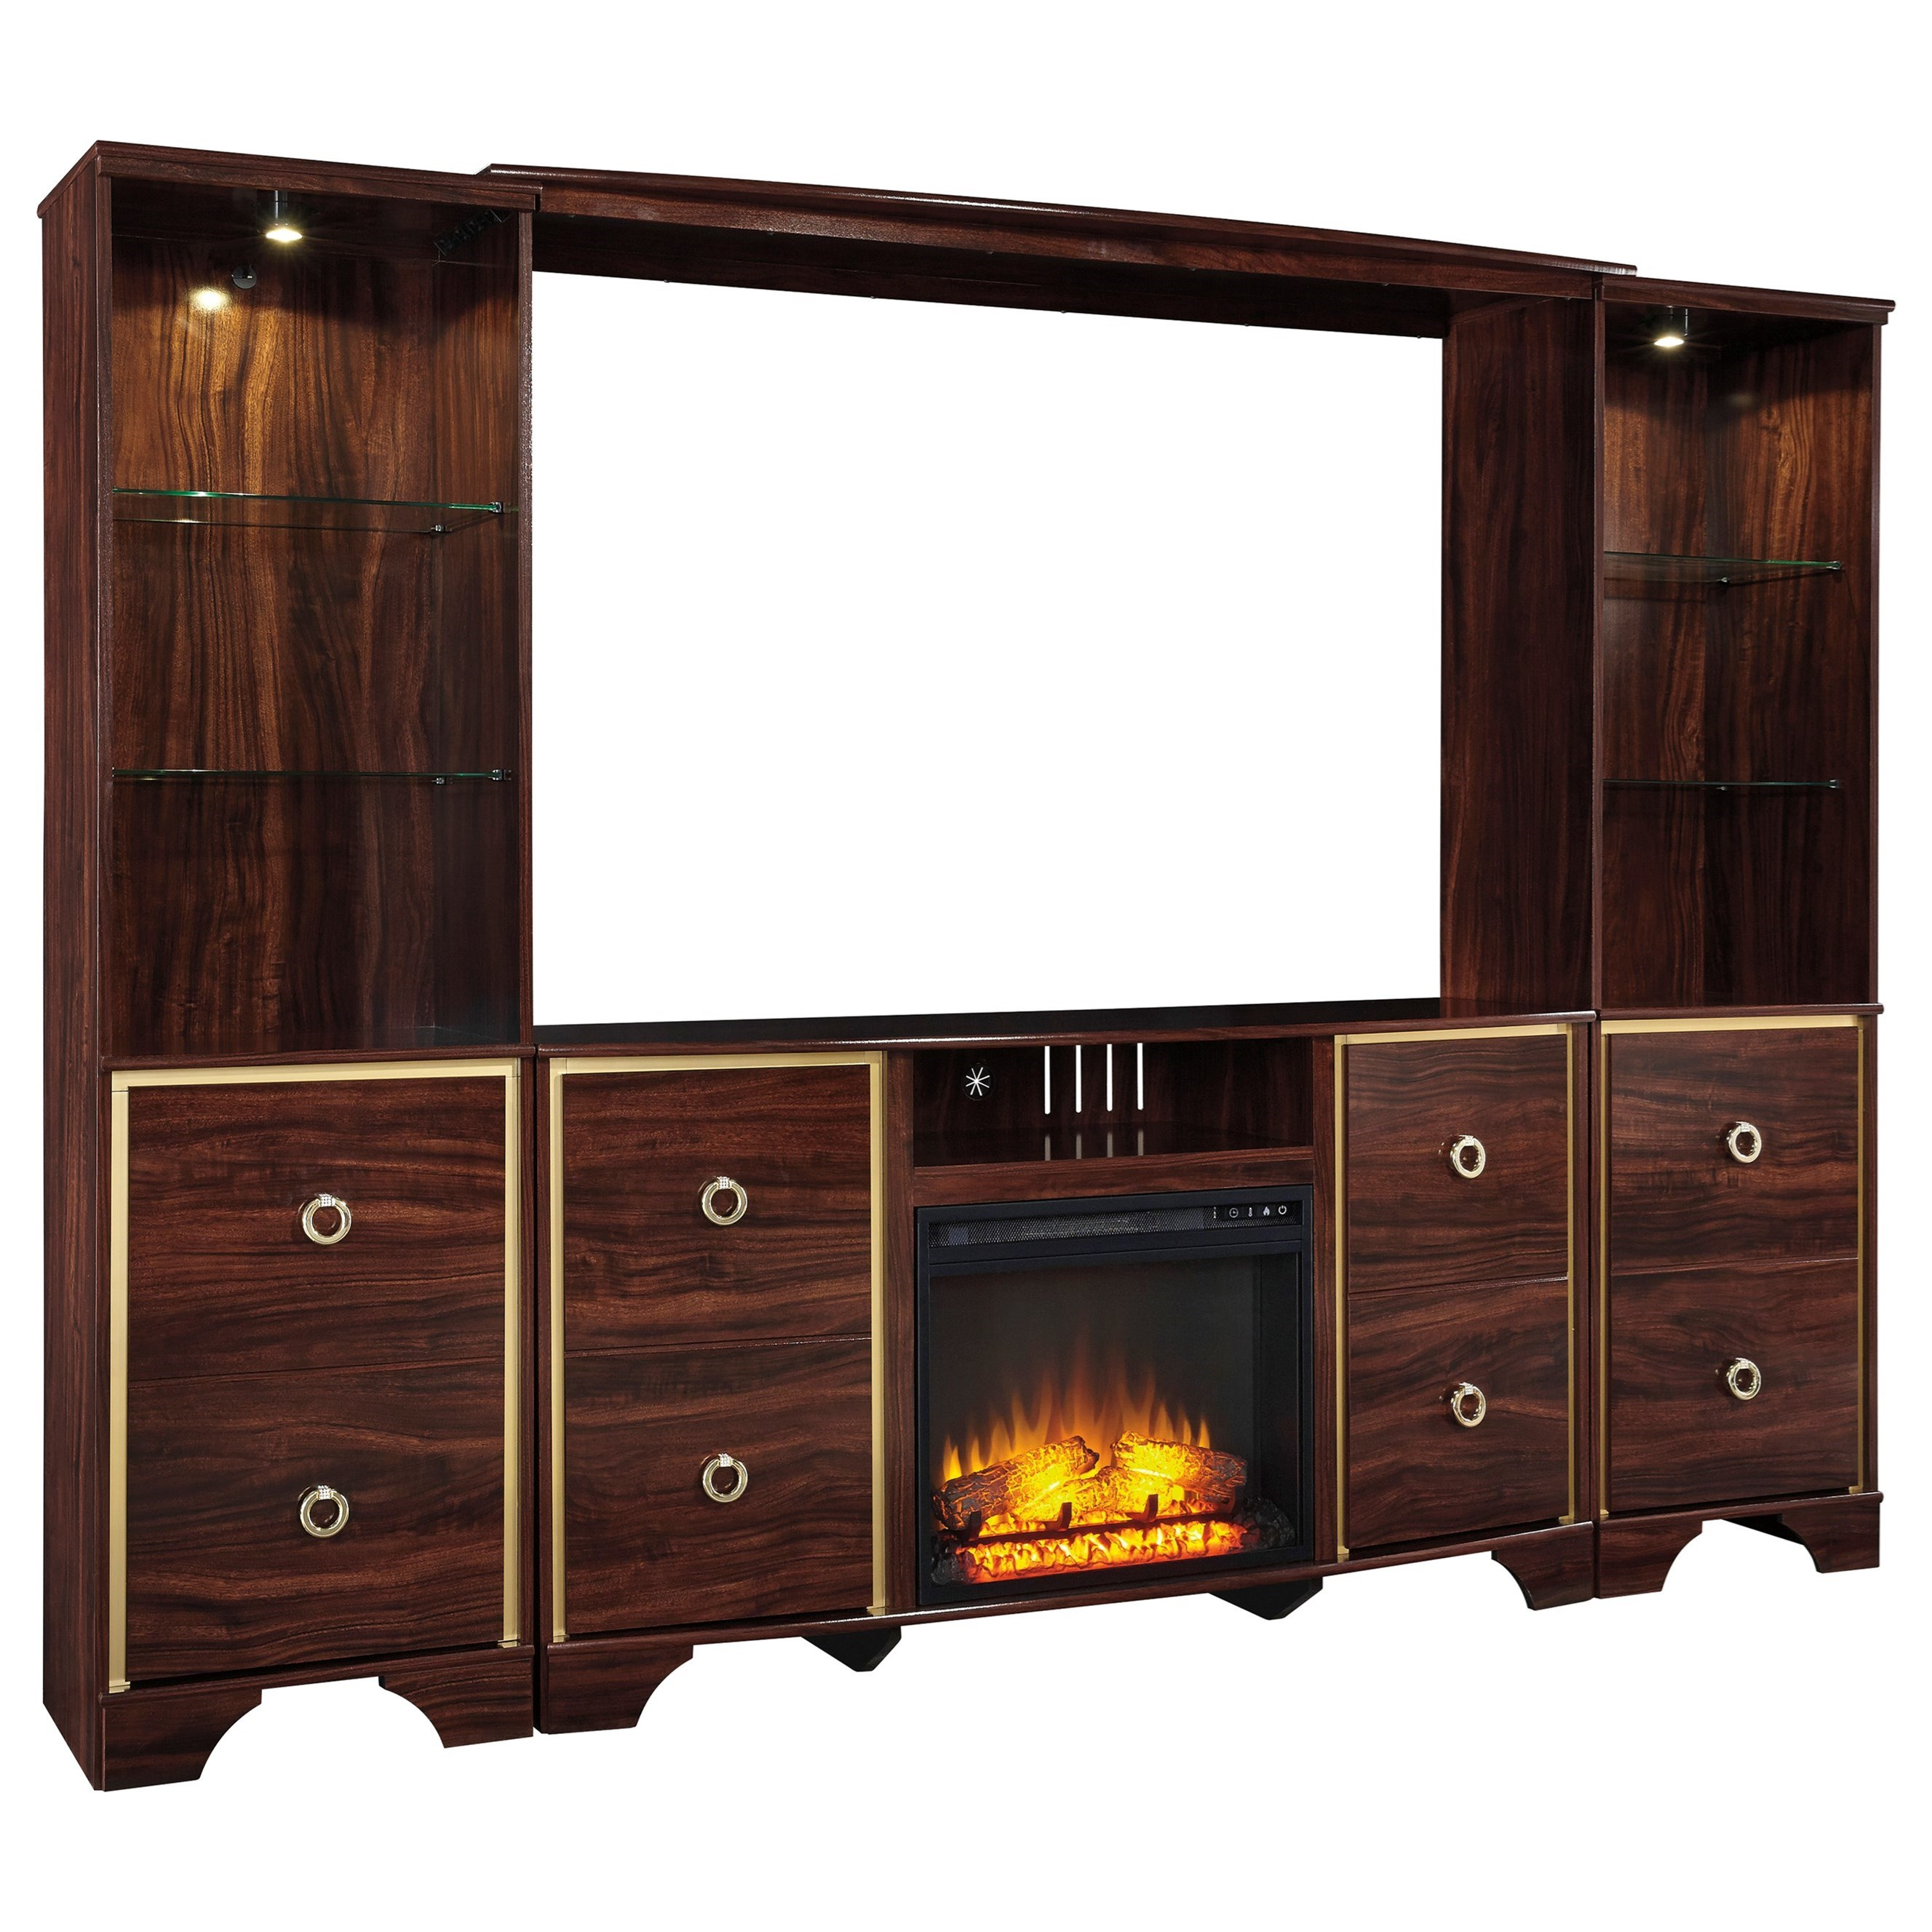 Signature Design By Ashley Furniture Lenmara Glam Entertainment Center With Fireplace Insert